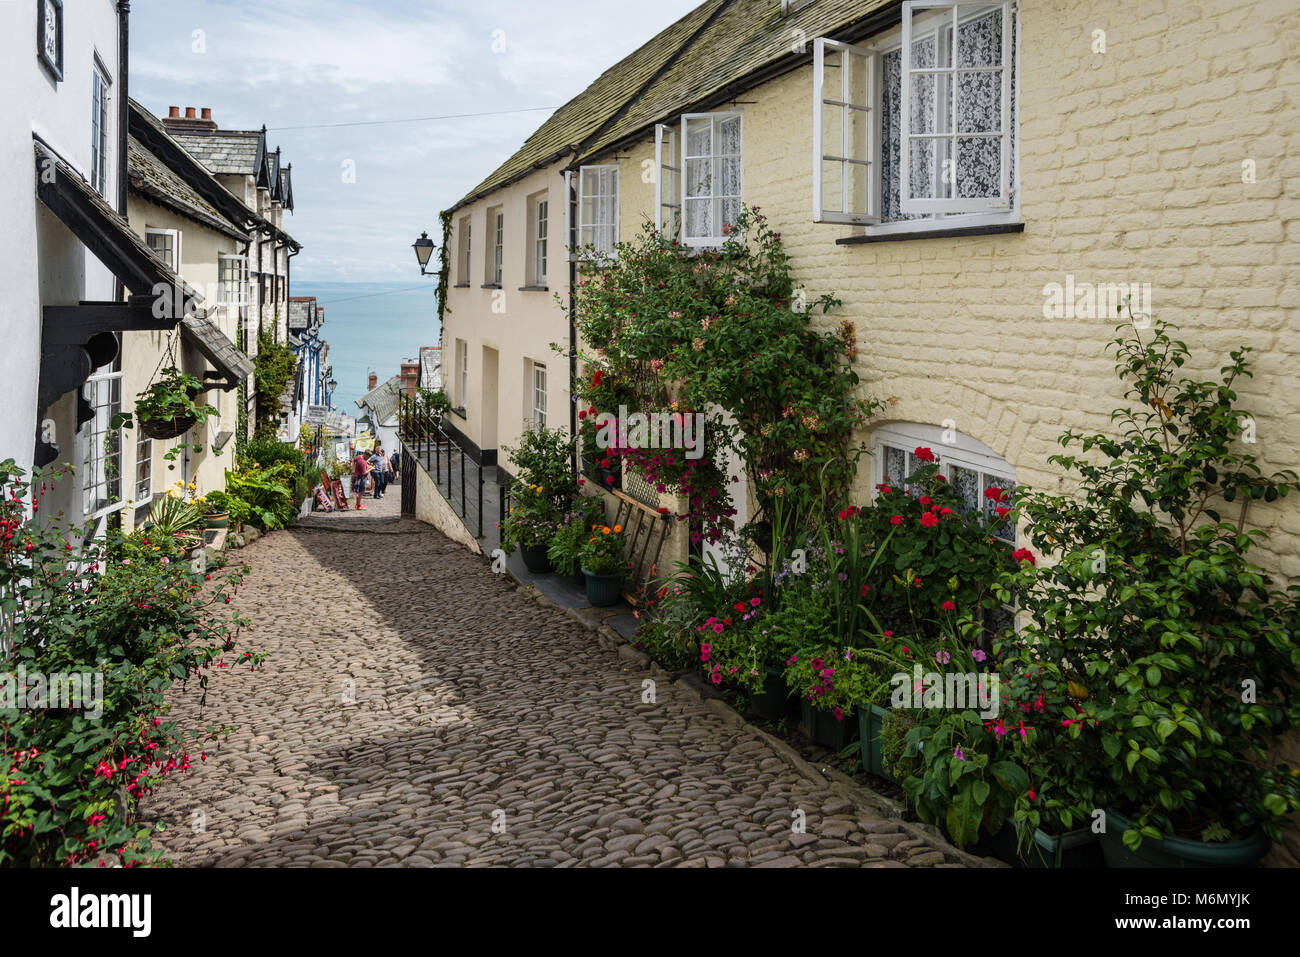 Clovelly et ses étroites ruelles pavées Street North Devon UK Photo Stock